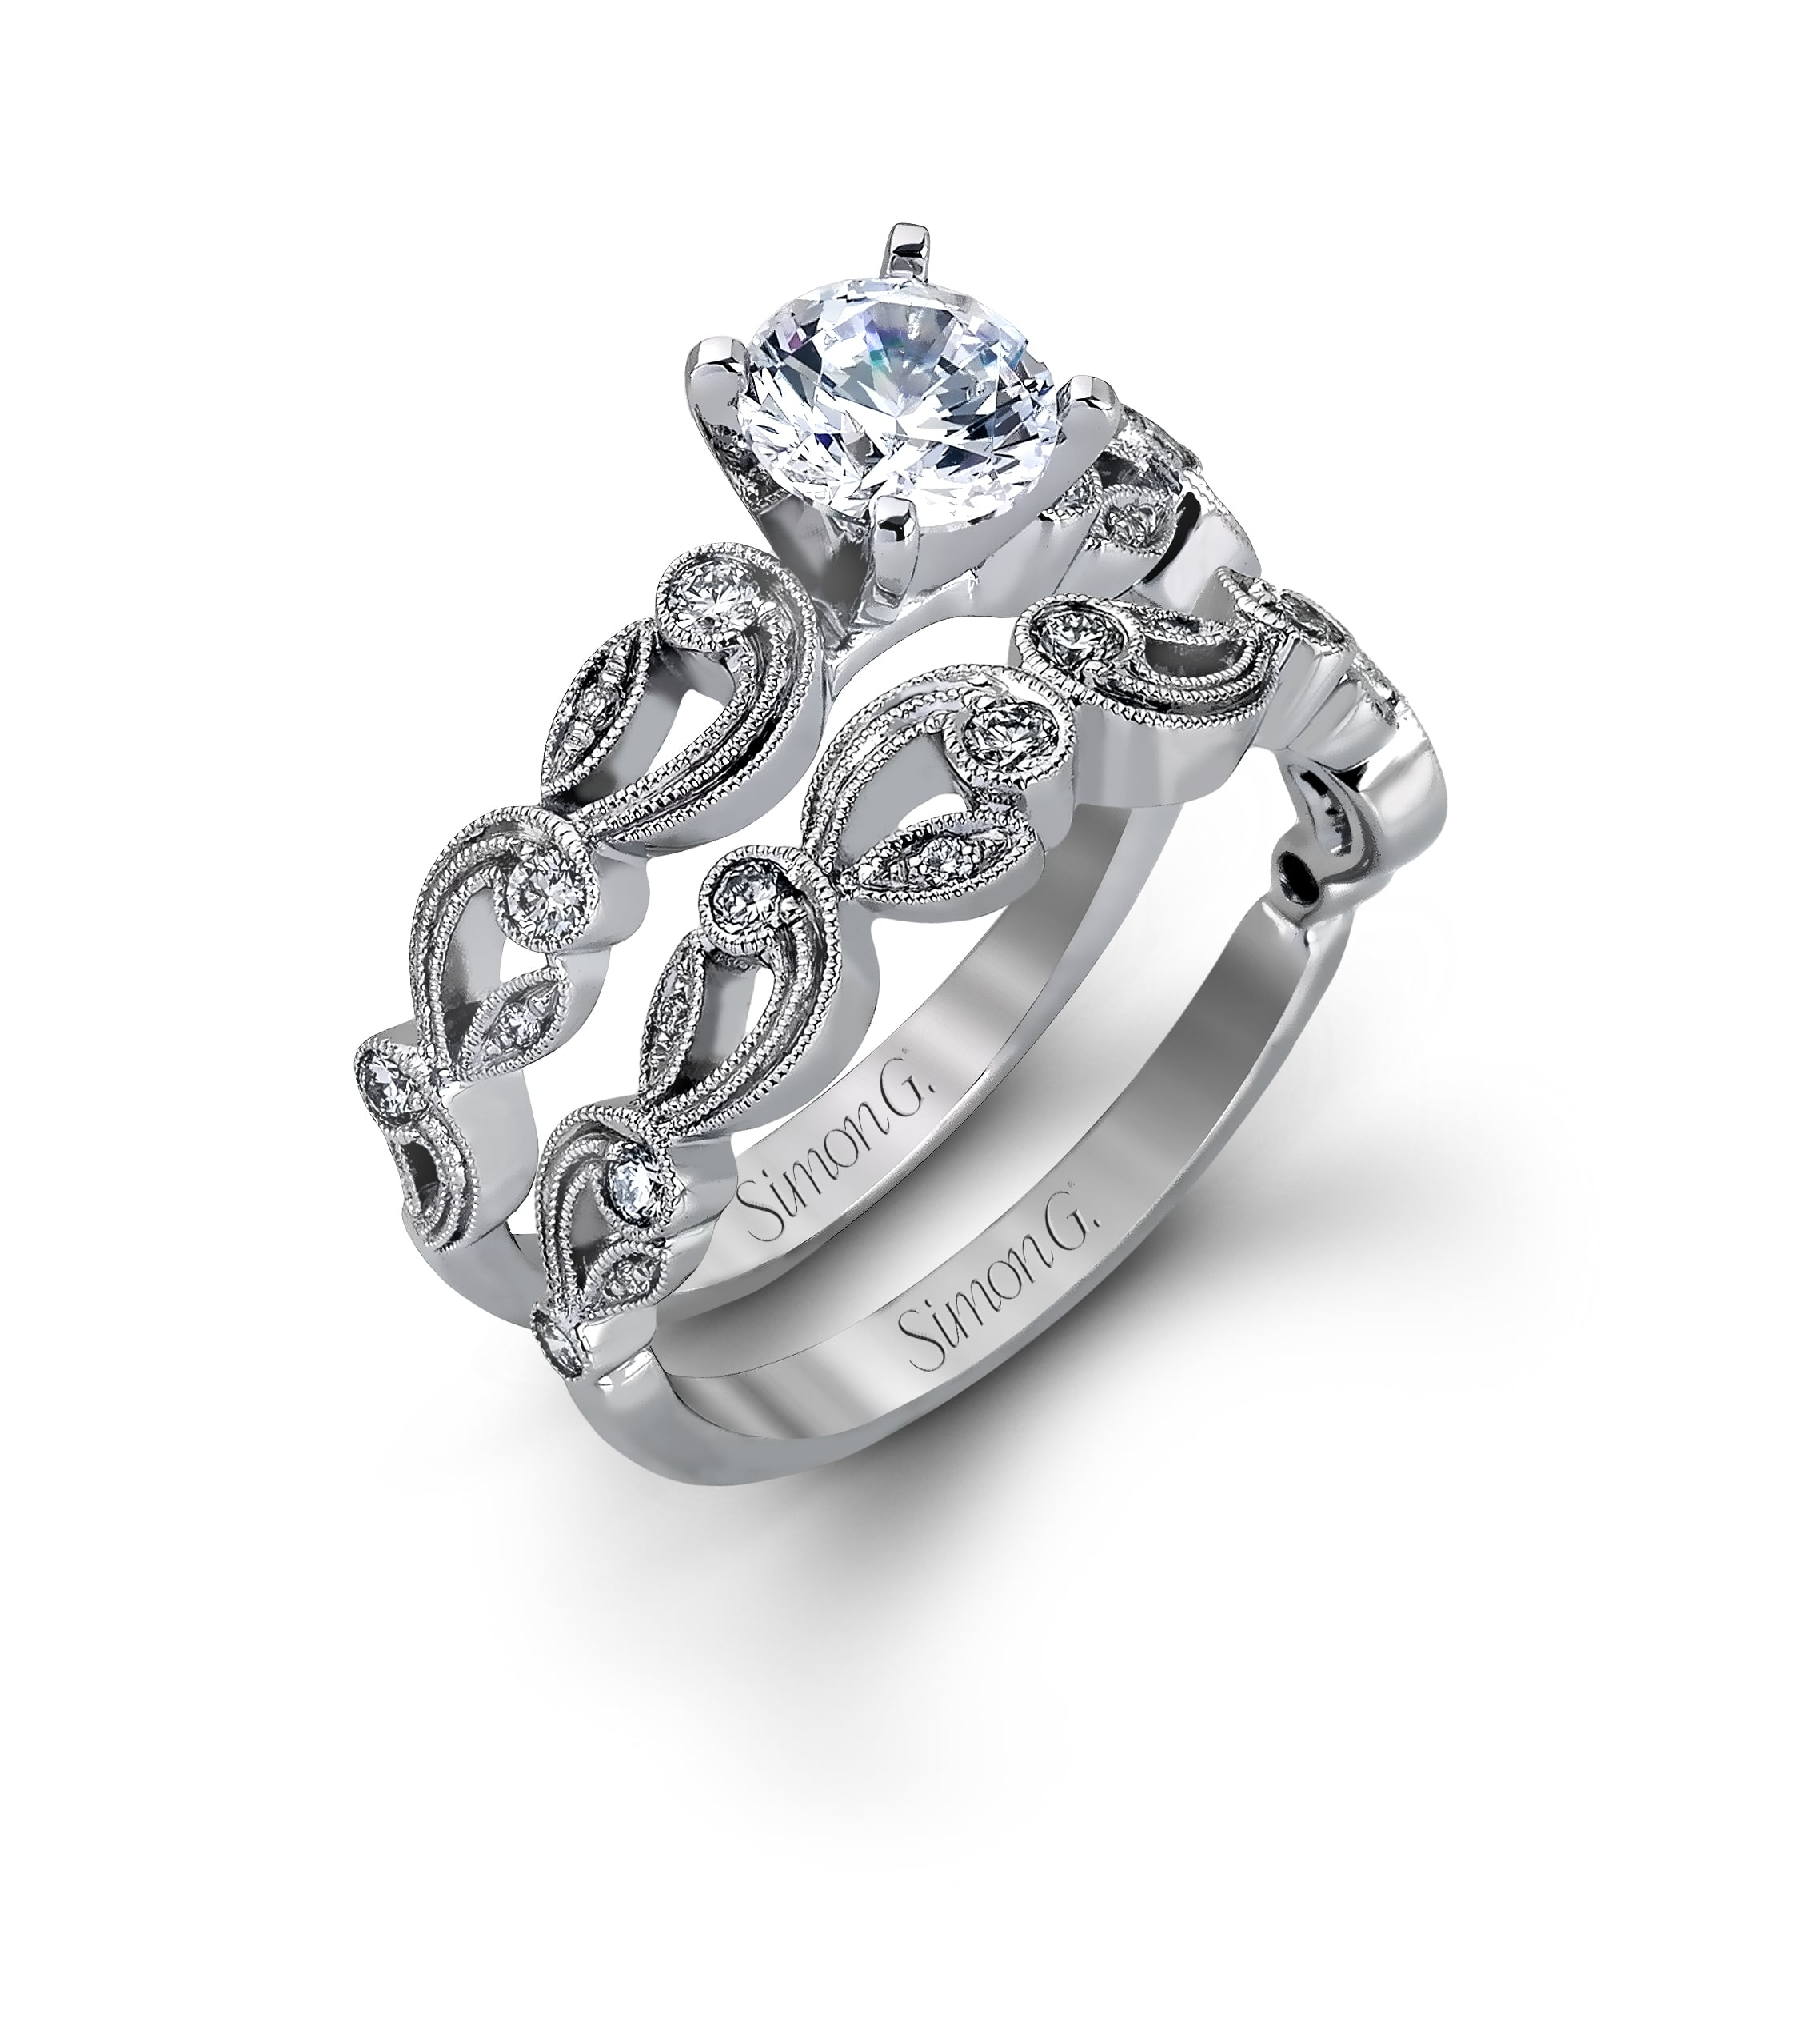 Round engagement set from Simon G. Duchess Collection.